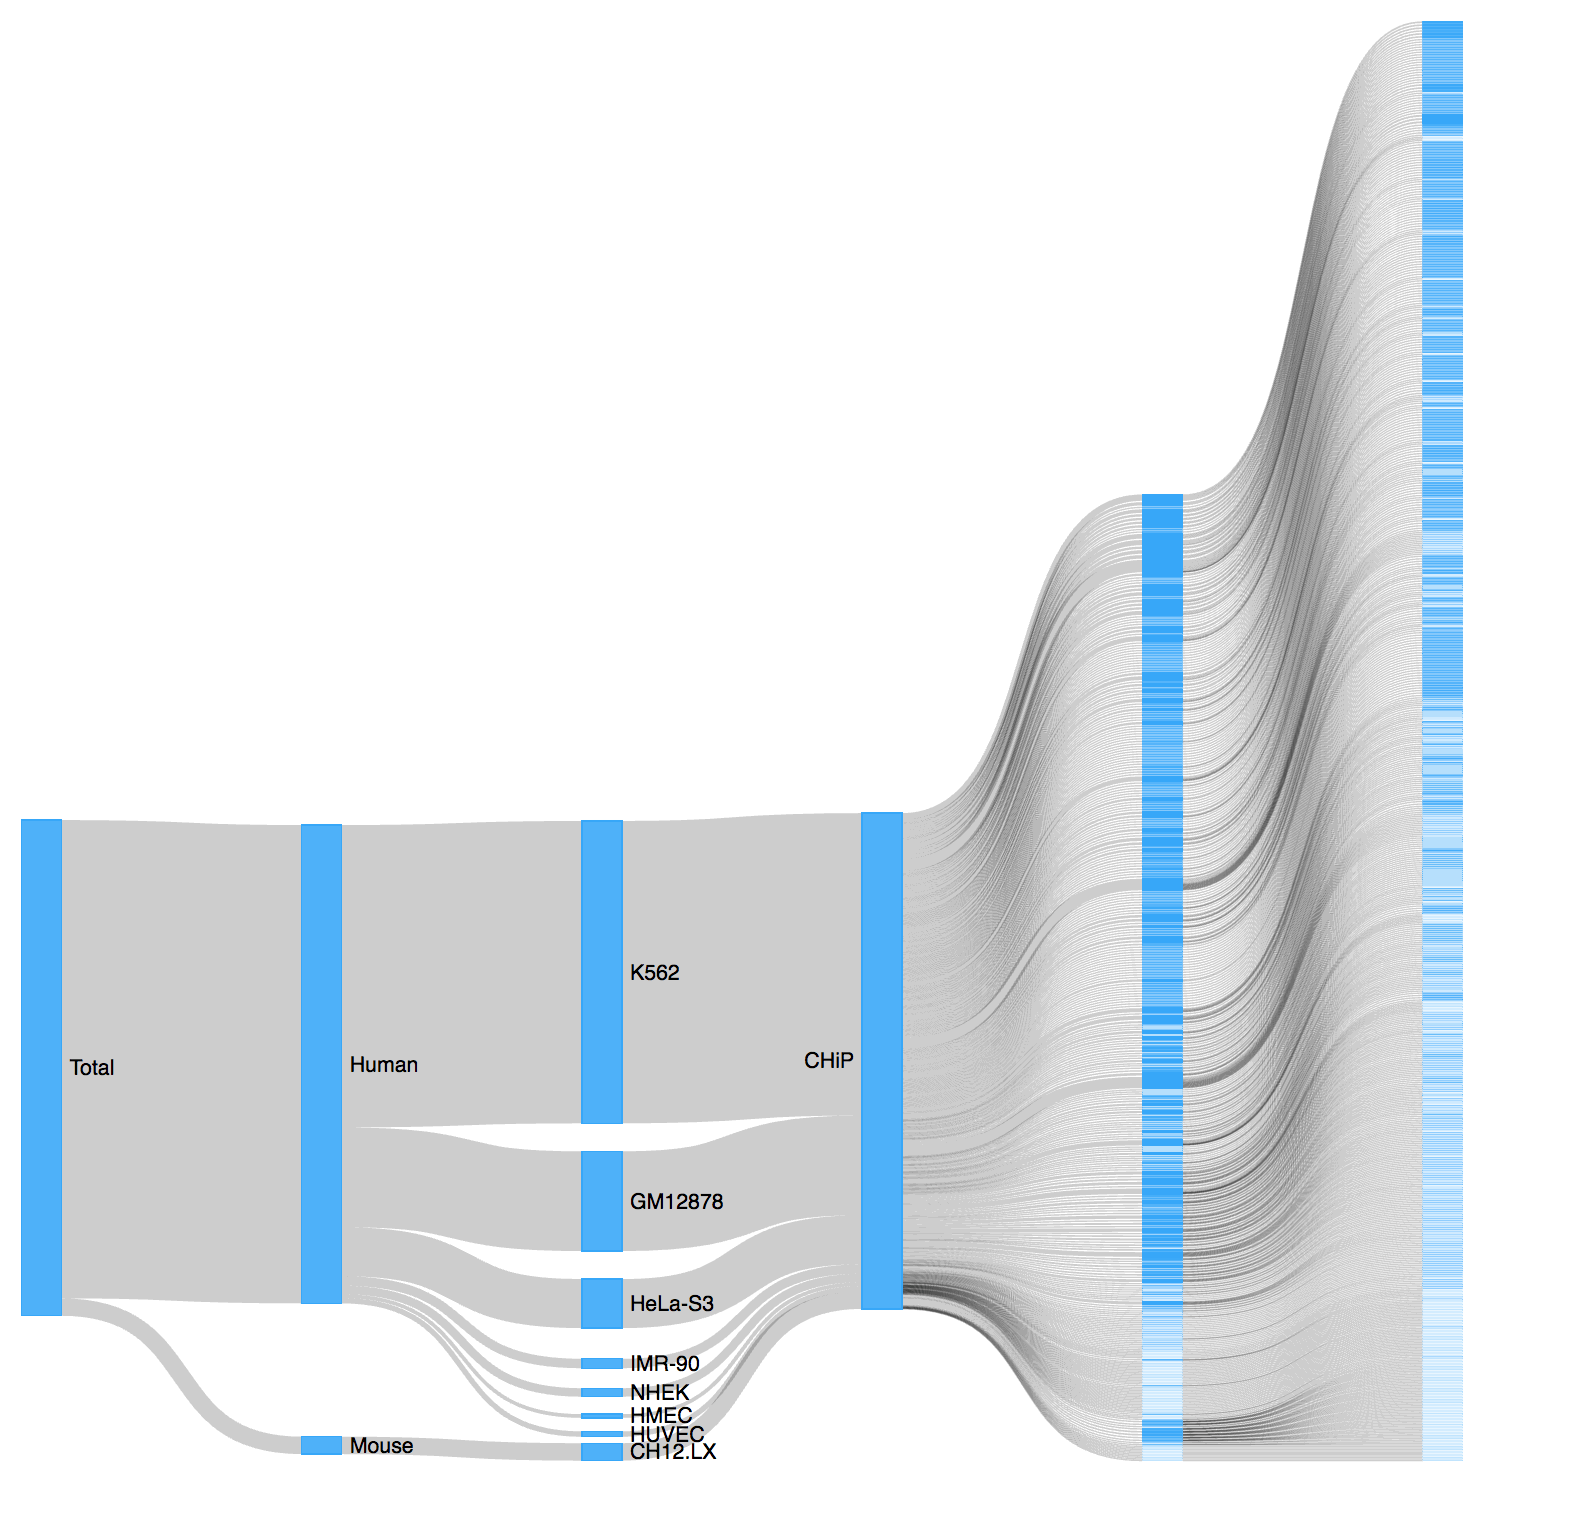 hight resolution of d3 sankey diagram from csv rendering incorrectly